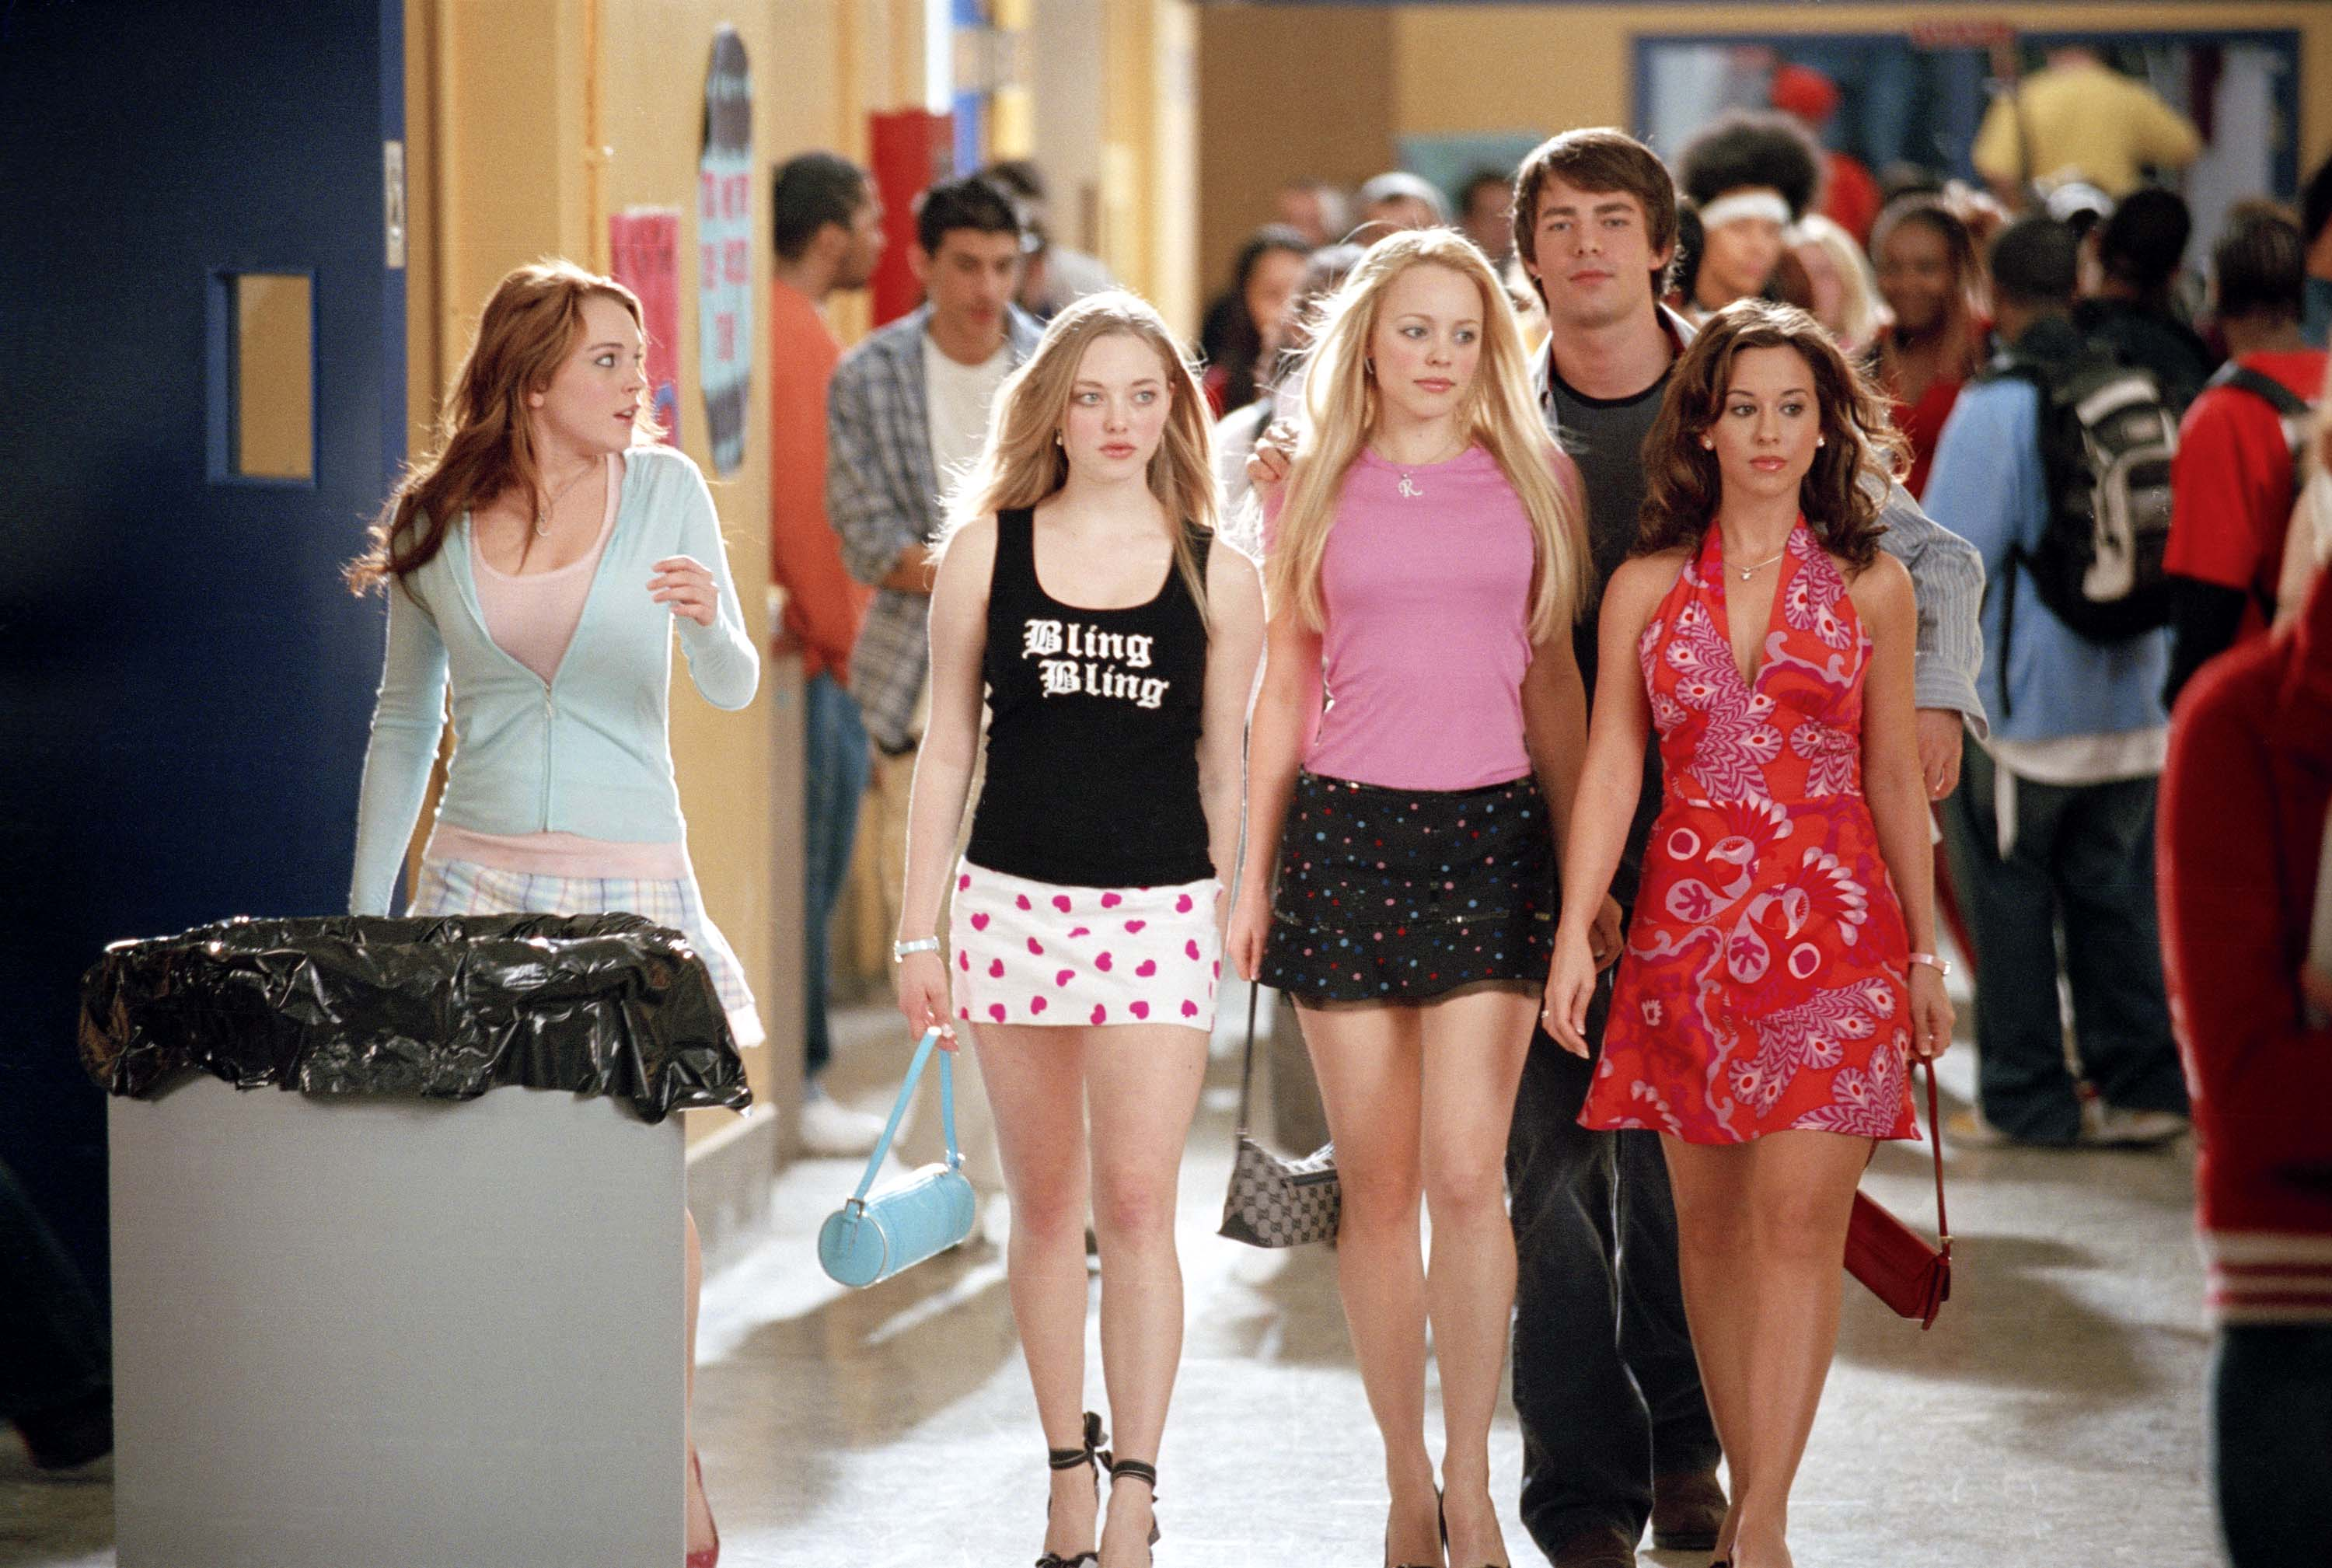 mean girls essay related university degree film studies essays